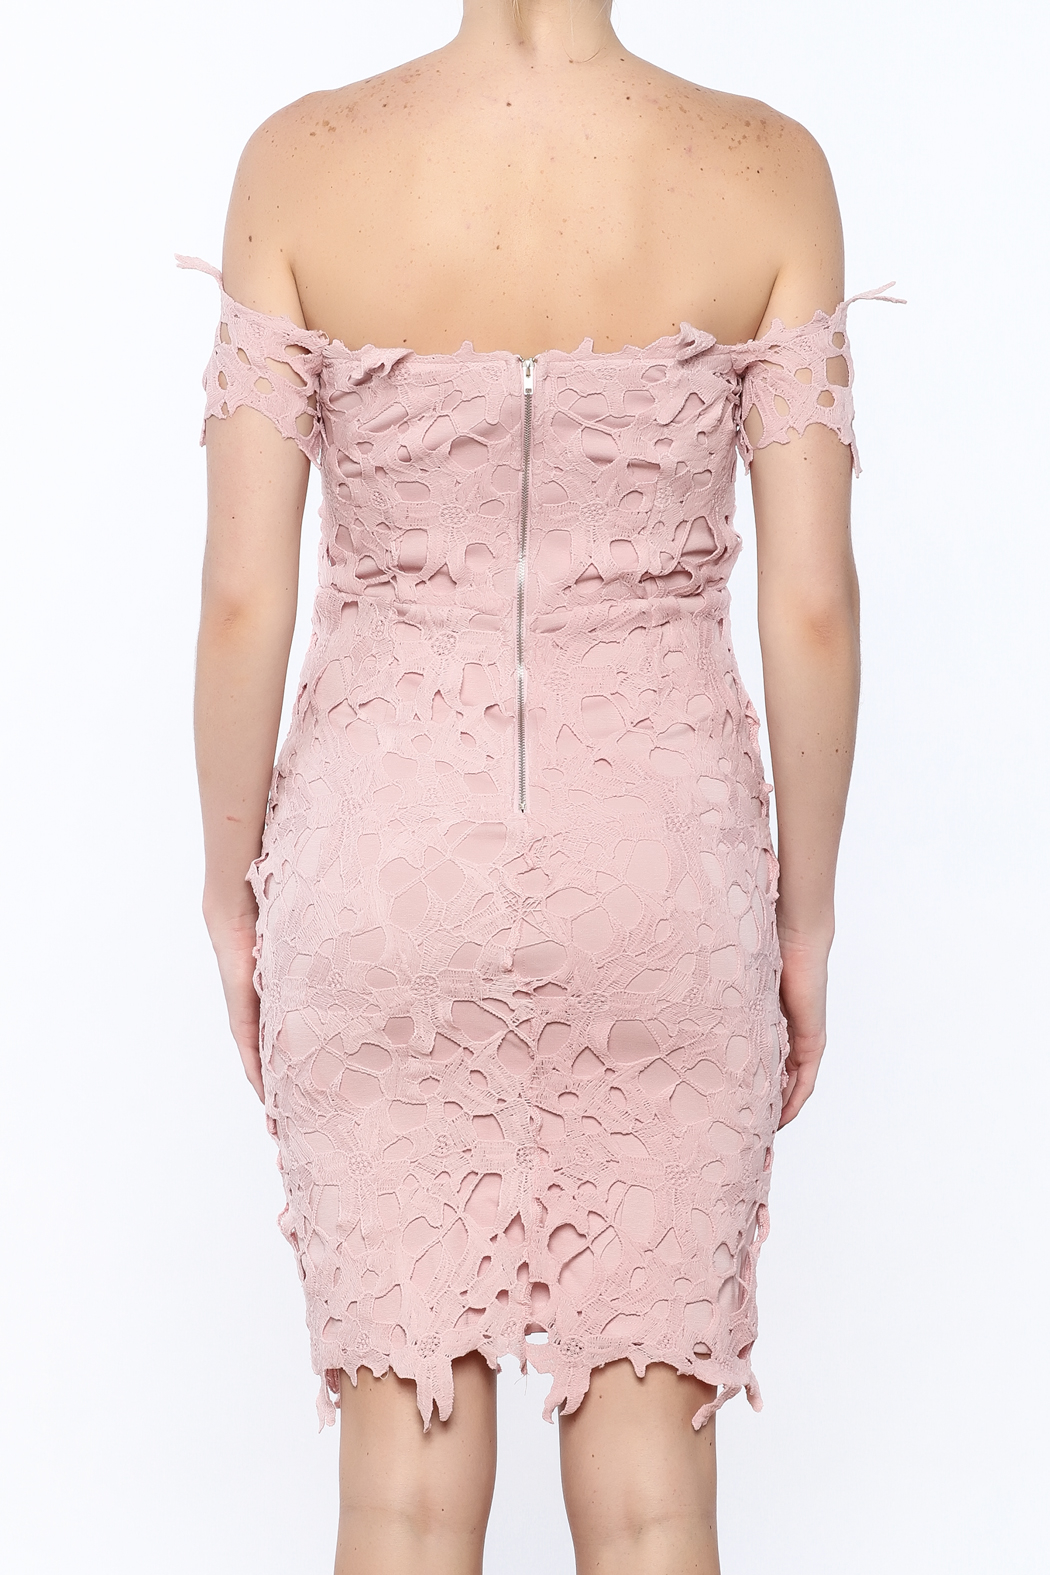 Ark & Co. Pink Crochet Dress - Back Cropped Image